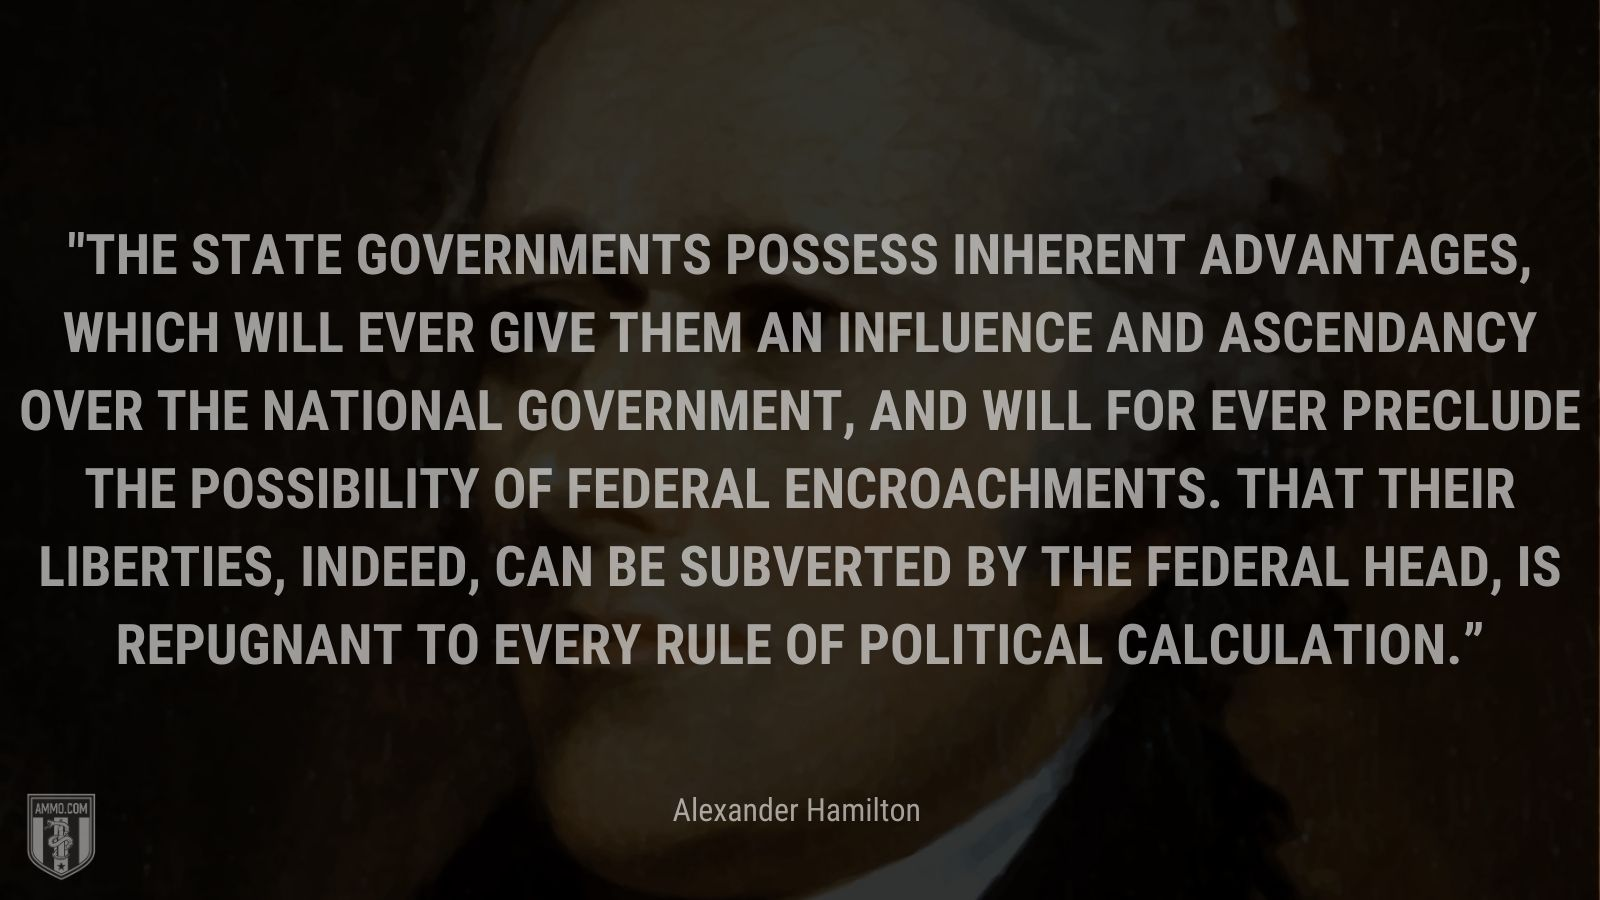 """""""The State governments possess inherent advantages, which will ever give them an influence and ascendancy over the National Government, and will for ever preclude the possibility of federal encroachments. That their liberties, indeed, can be subverted by the federal head, is repugnant to every rule of political calculation."""" - Alexander Hamilton"""